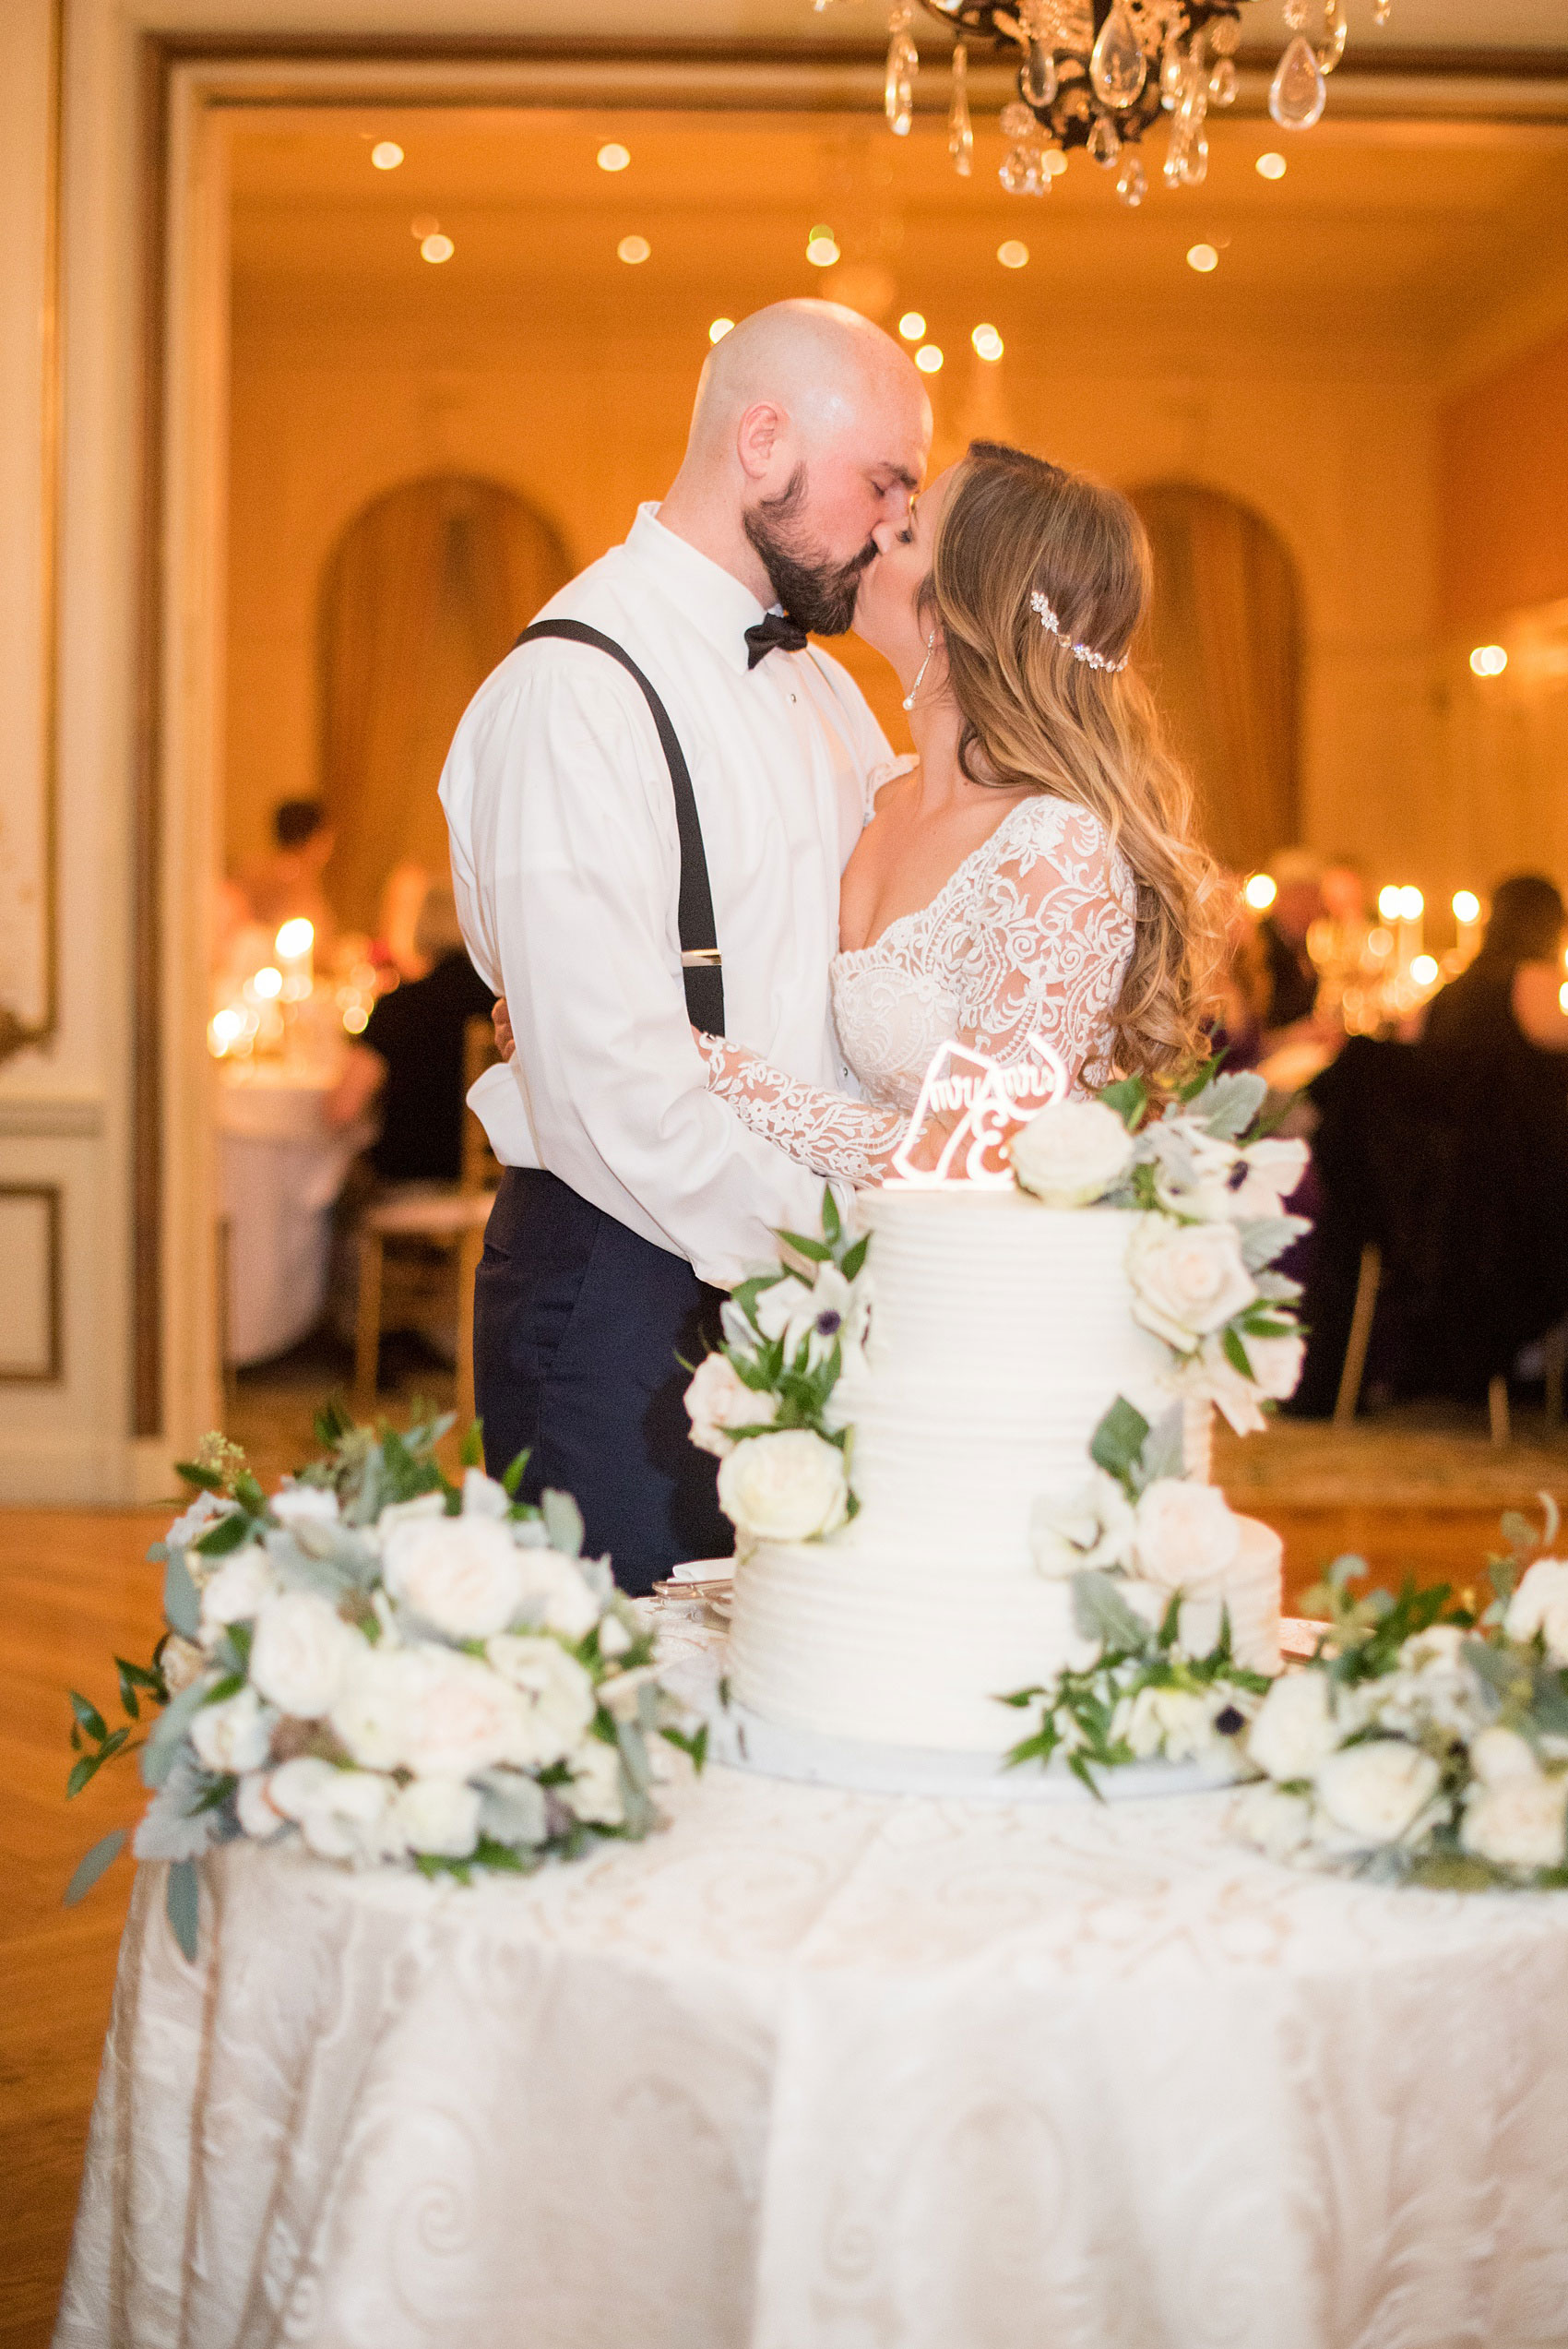 Wedding photos at Sleepy Hollow Country Club for a winter reception in January by Mikkel Paige Photography. The couple's Pittsburgh friends all contributed to a cookie table as dessert for the reception. The bride and groom kissed in front of their wedding cake before the cutting.